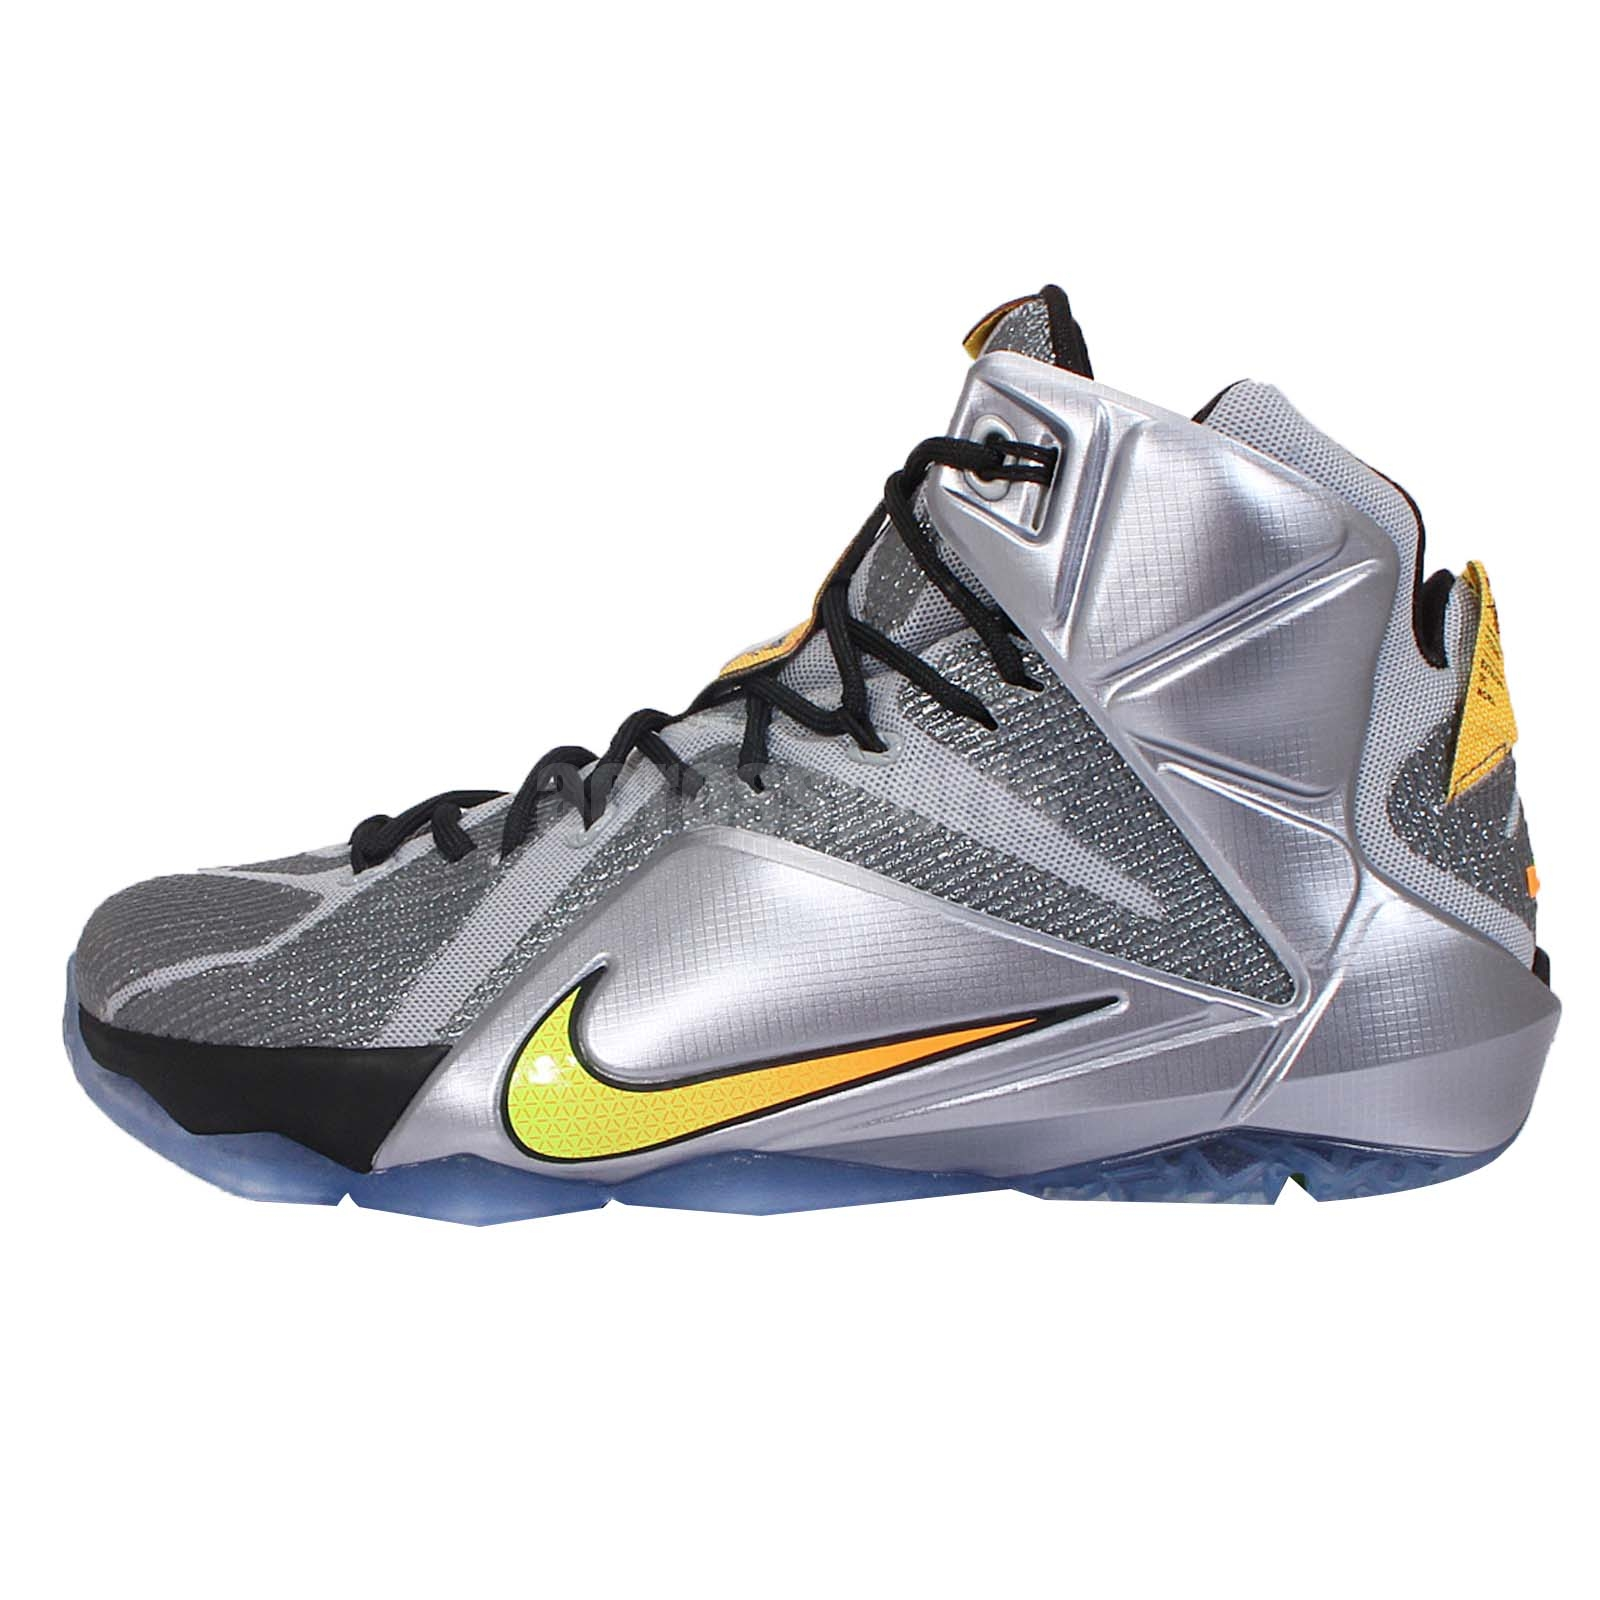 Nike Lebron XII EP 12 Flight Lebron James Silver Orange ...